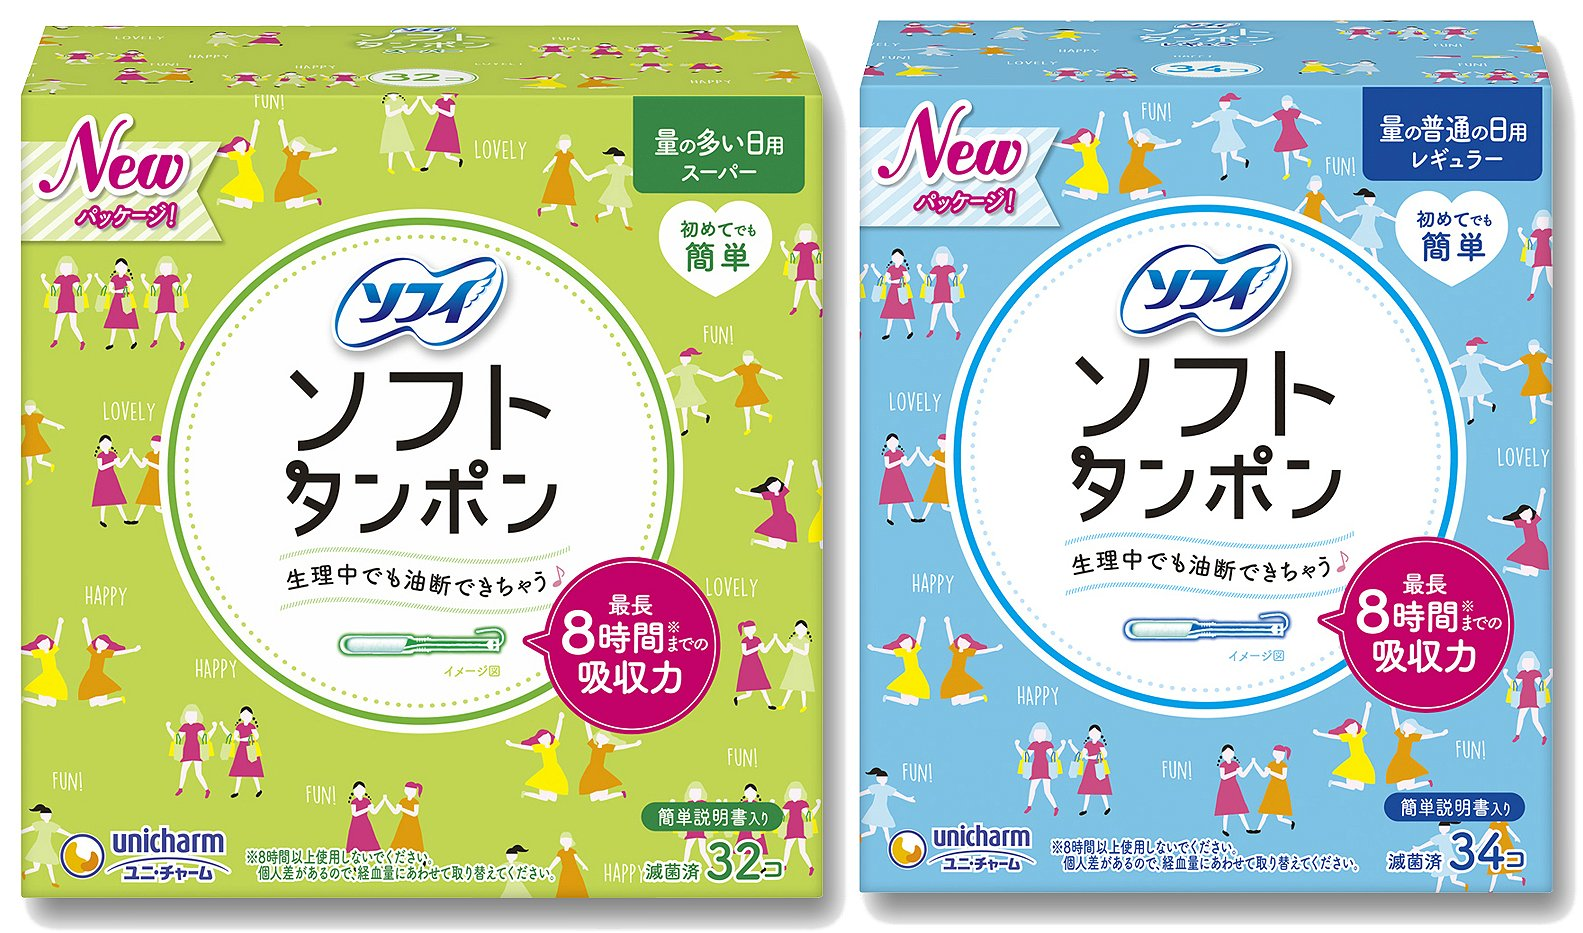 Unicharm Sofy Tampons Smooth-In Easy Plastic Applicator, Regular Absorbency 34 Count & Super Absorbency 32 Count ( Total 66 Count ) Made In Japan